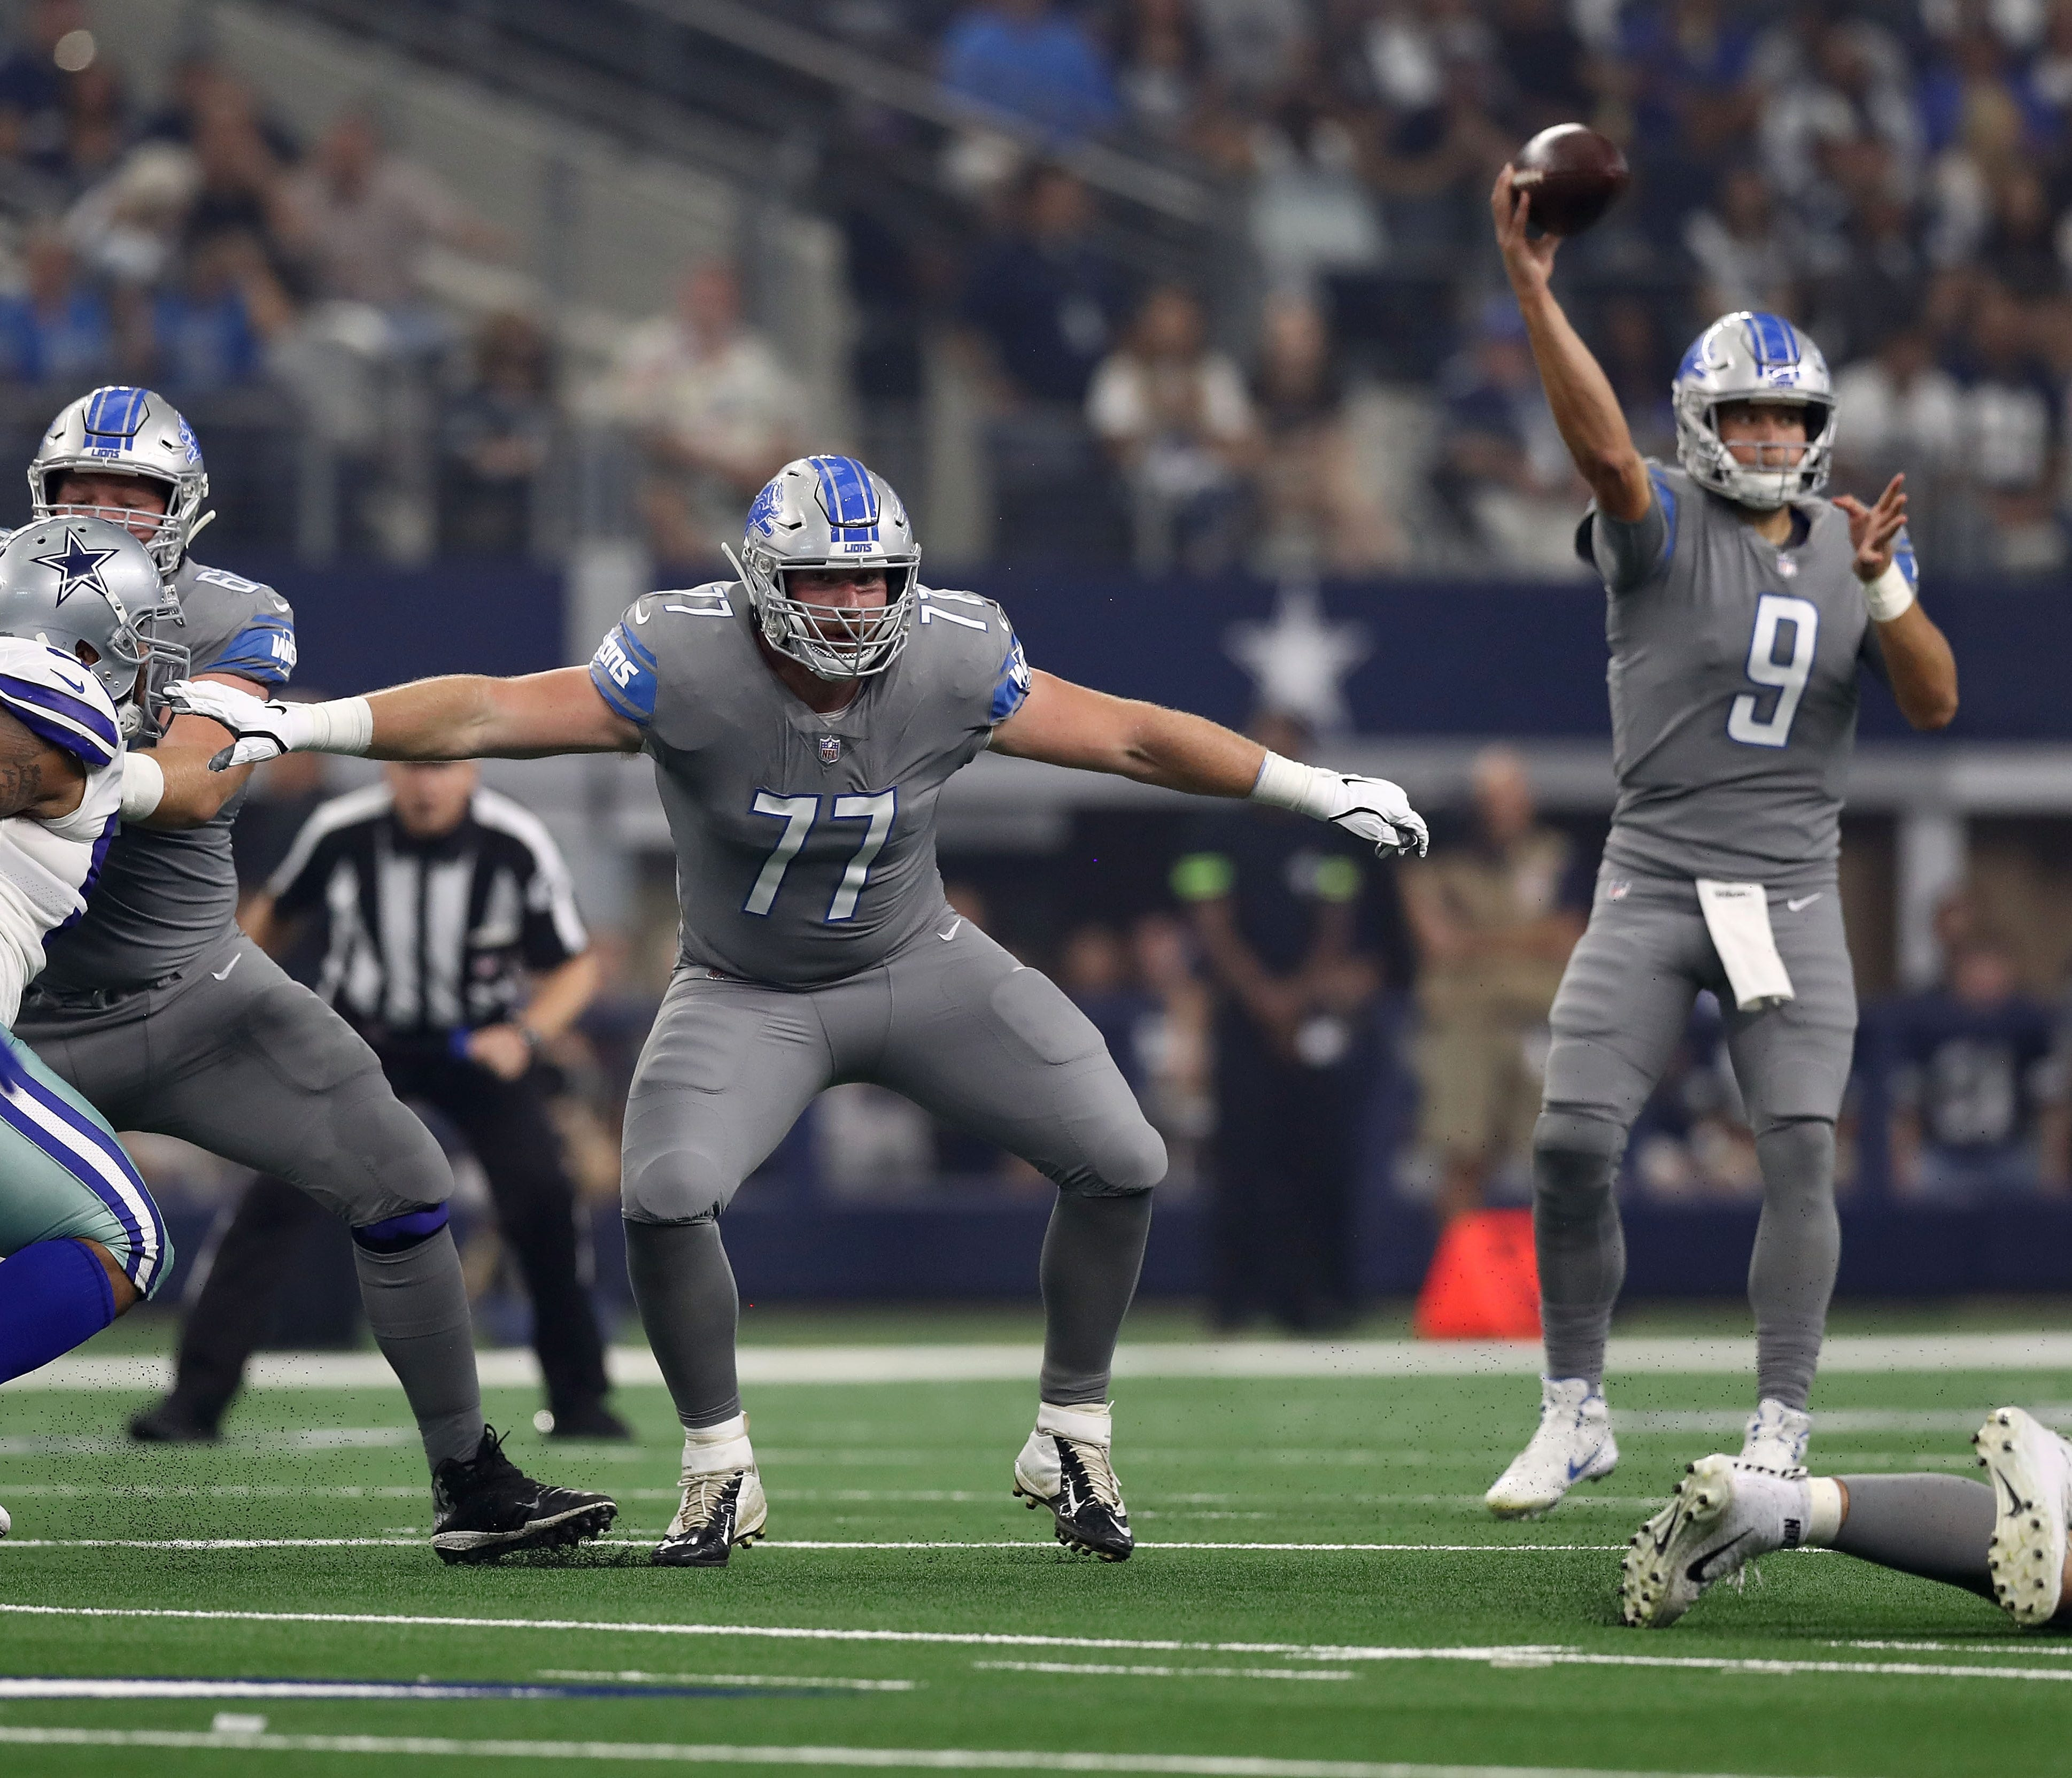 Lions offensive lineman Frank Ragnow protects quarterback Matthew Stafford as he passes in the first quarter in Arlington, Texas, Sunday, Sept. 30, 2018.